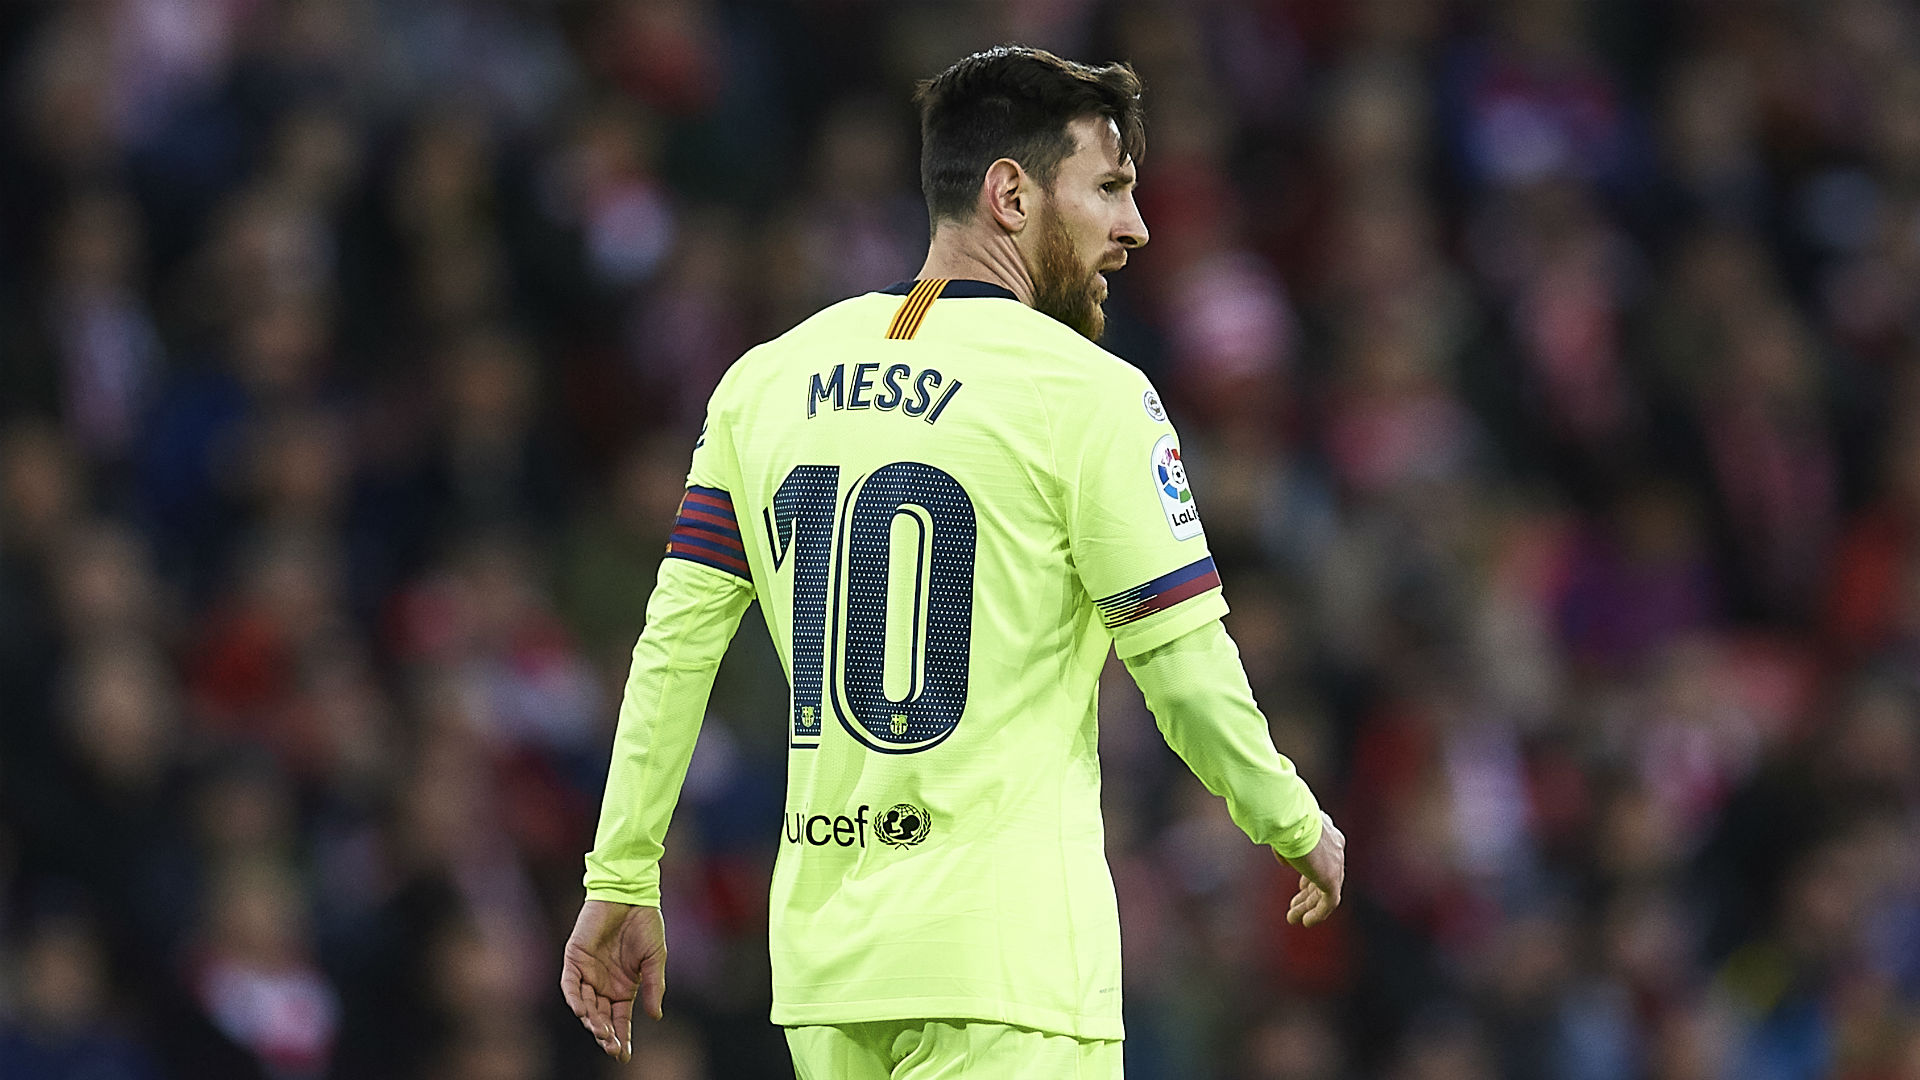 Messi's relationship with Barcelona will continue 'forever' - Bartomeu